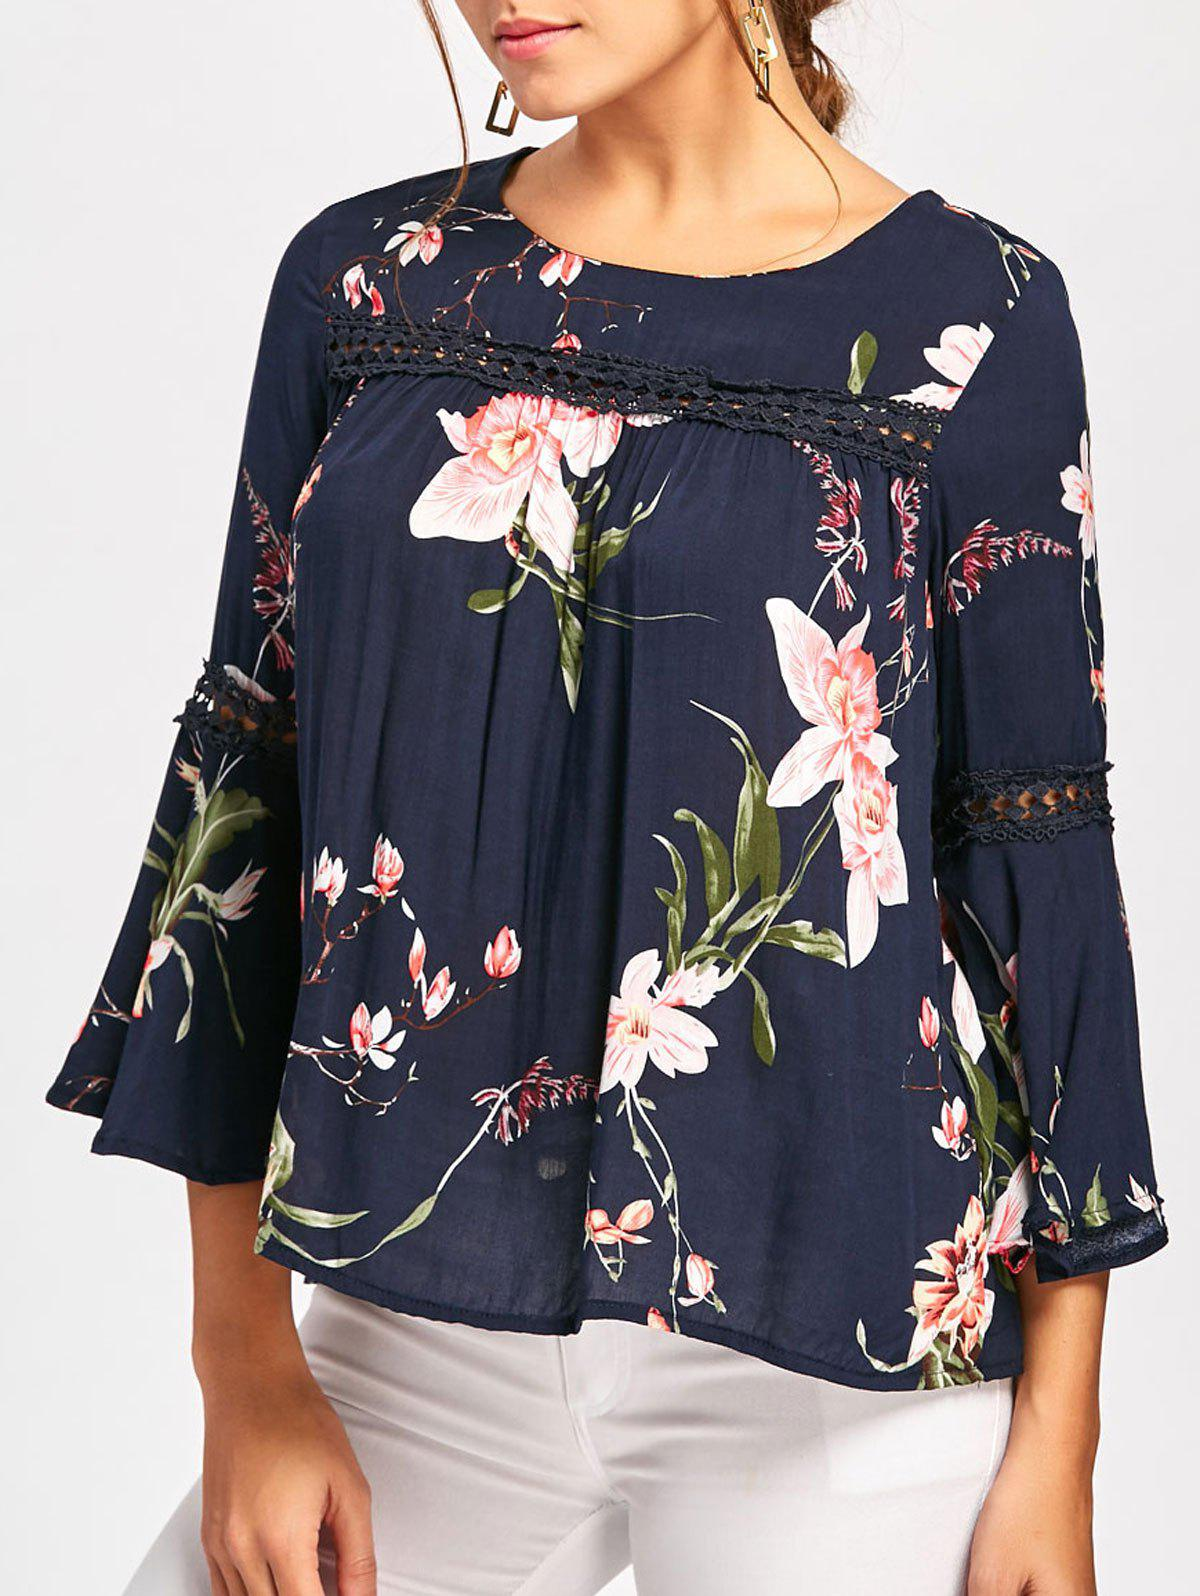 Bell Sleeve Lace Insert Blumendruck Bluse